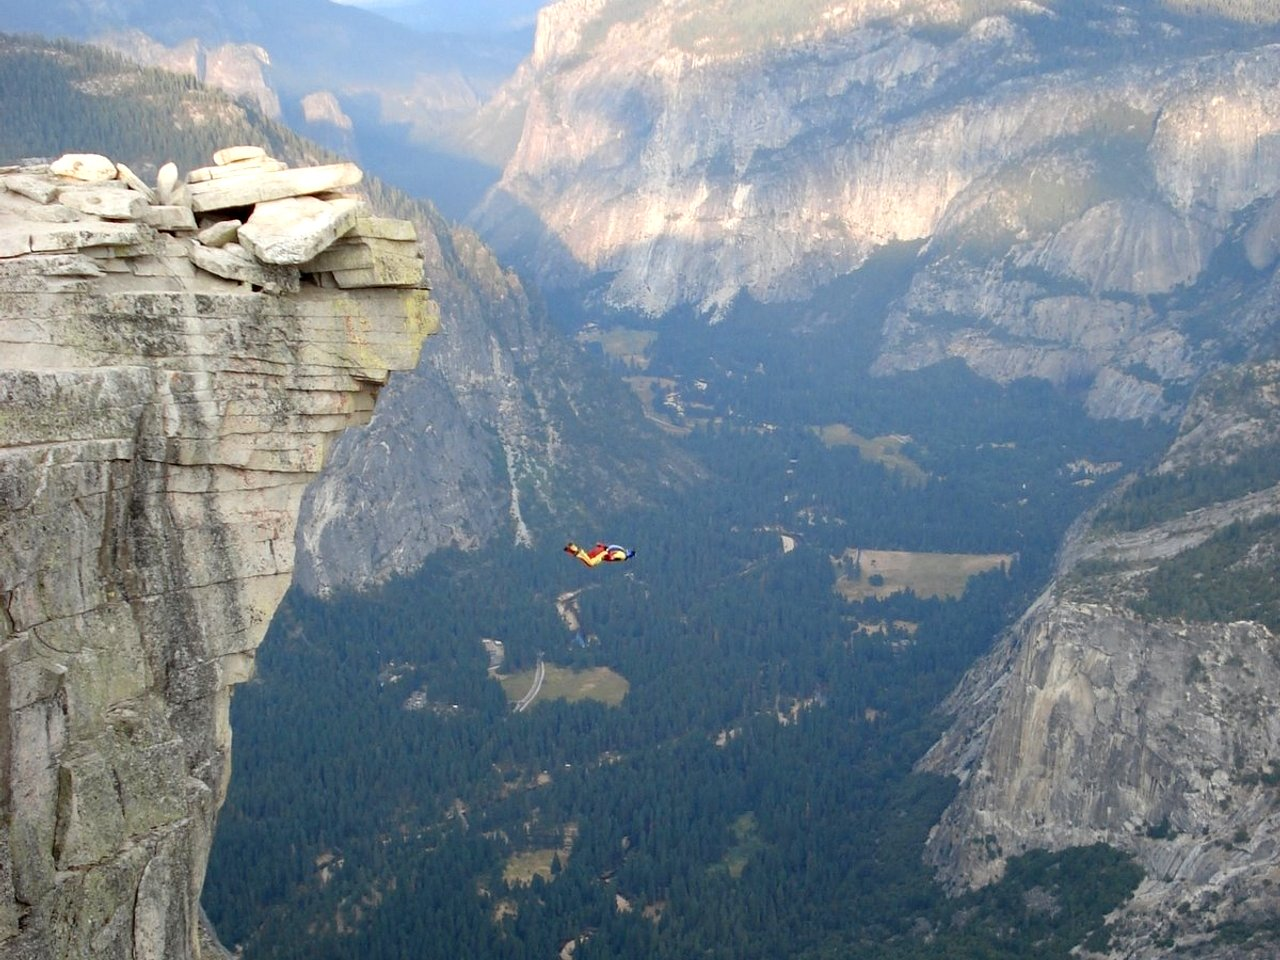 Base Jumping 004 YOLO!